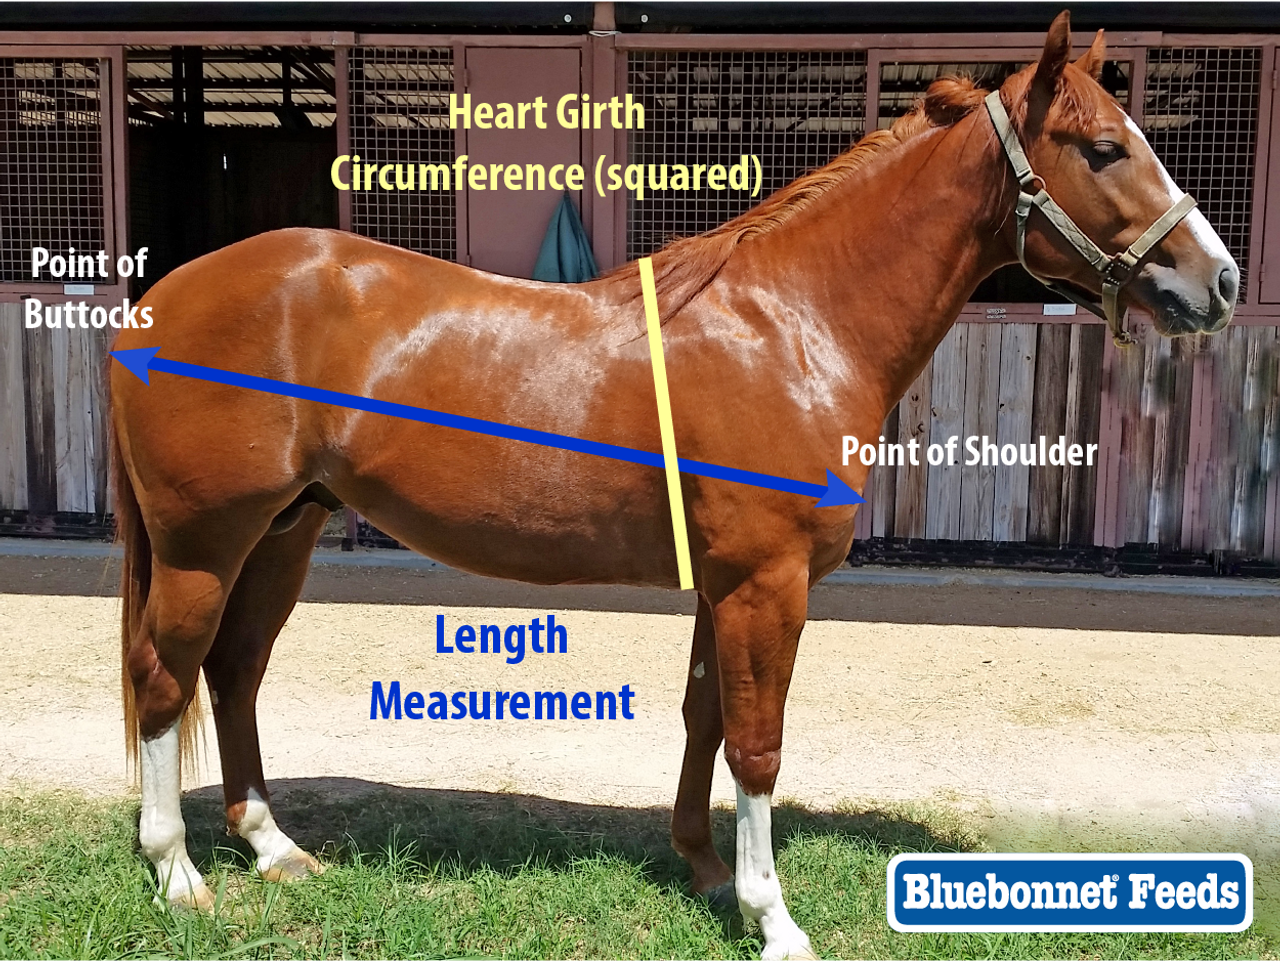 Estimating Body Weight of Your Horse